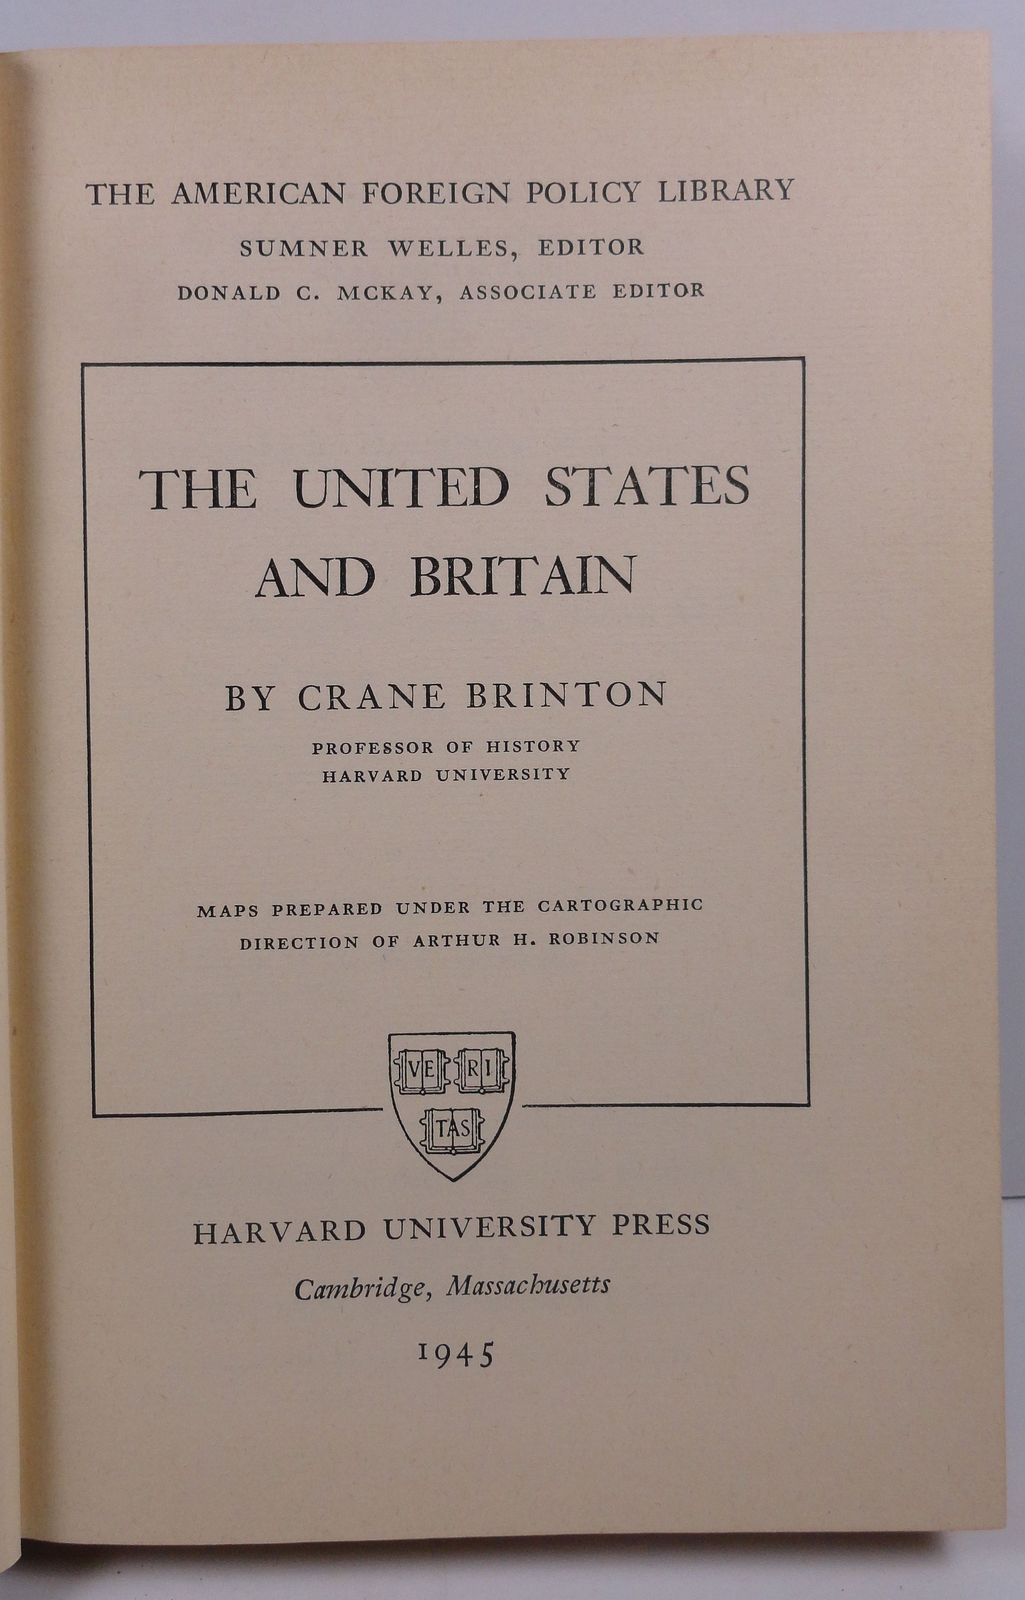 The United States and Britain by Crane Brinton 1945 Harvard